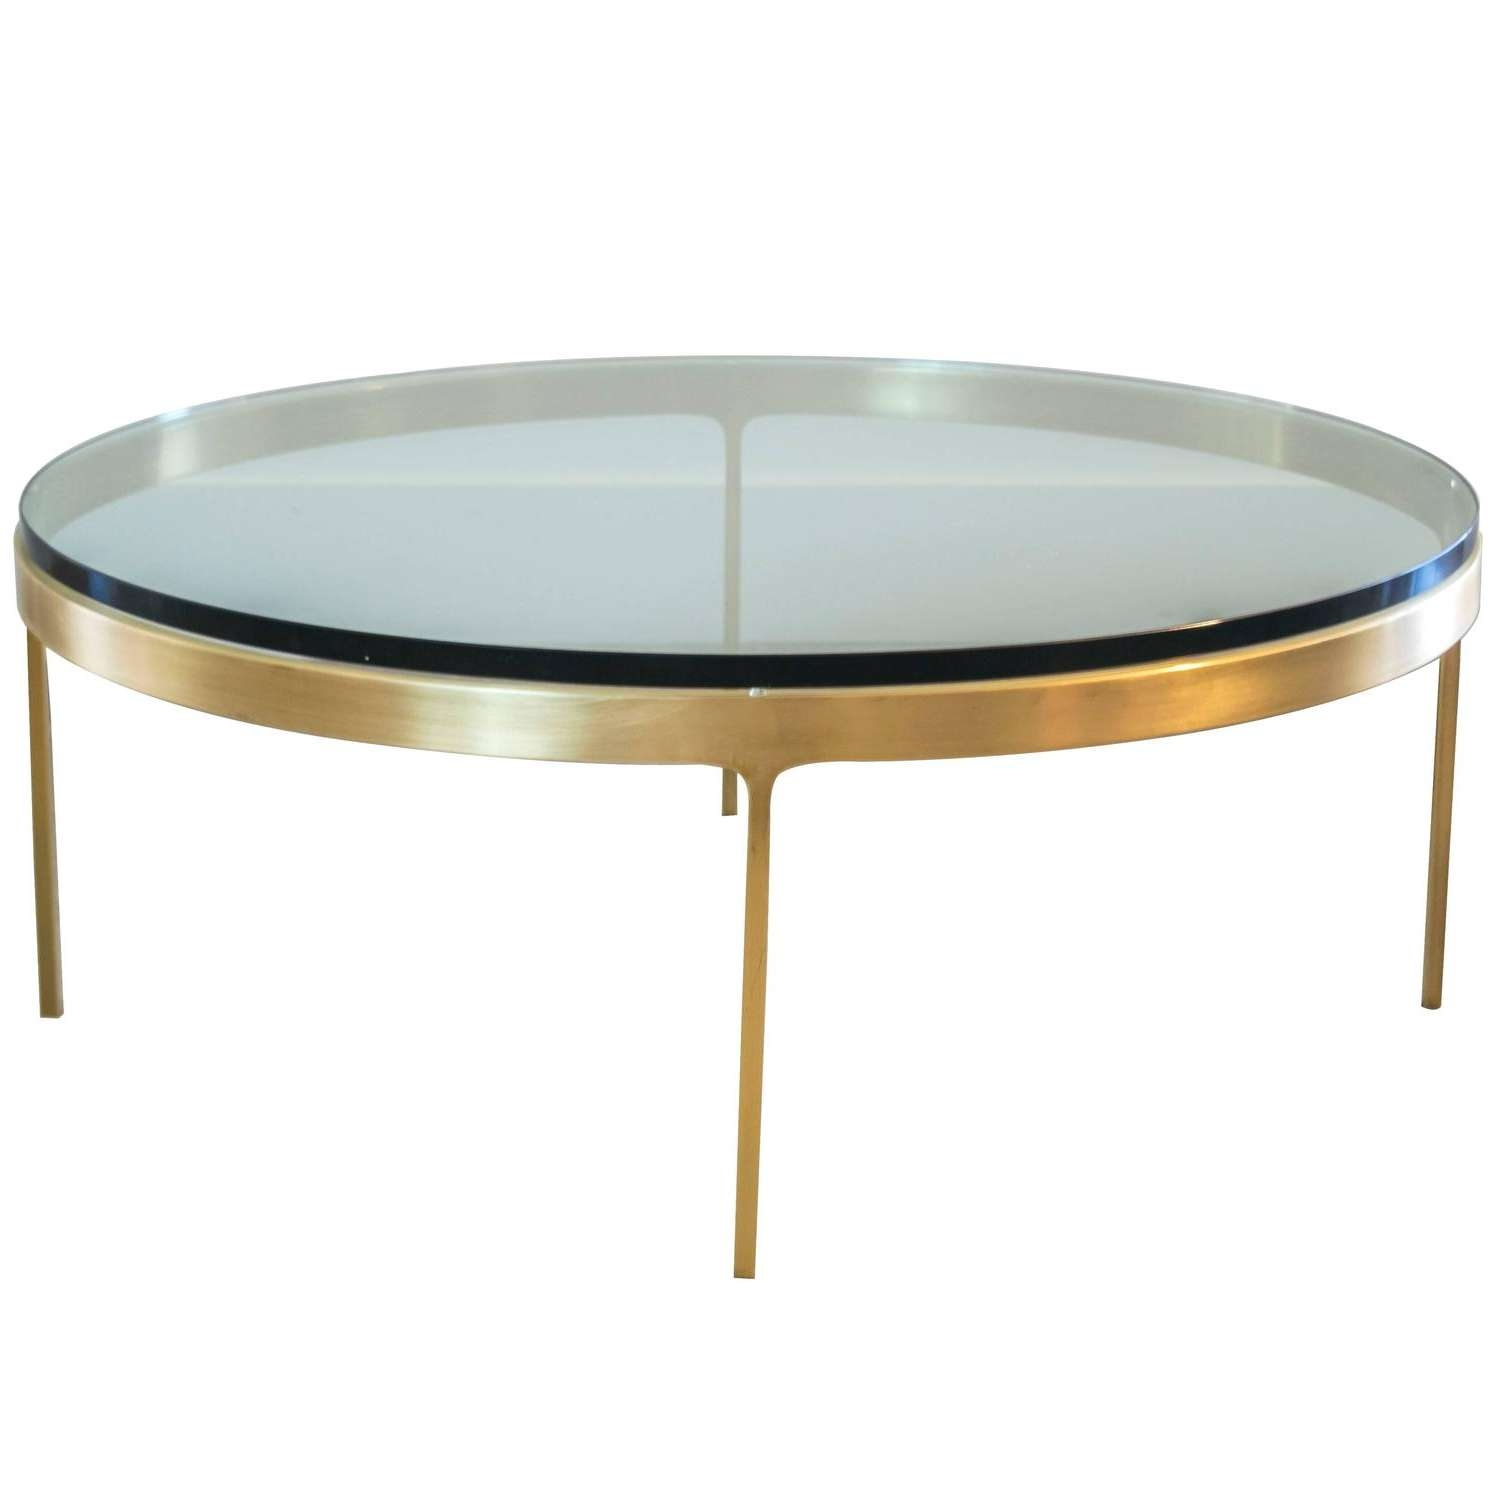 2017 Antique Brass Glass Coffee Tables Inside Coffee Table : Marvelous Oval Coffee Table Accent Tables Modern (View 1 of 20)